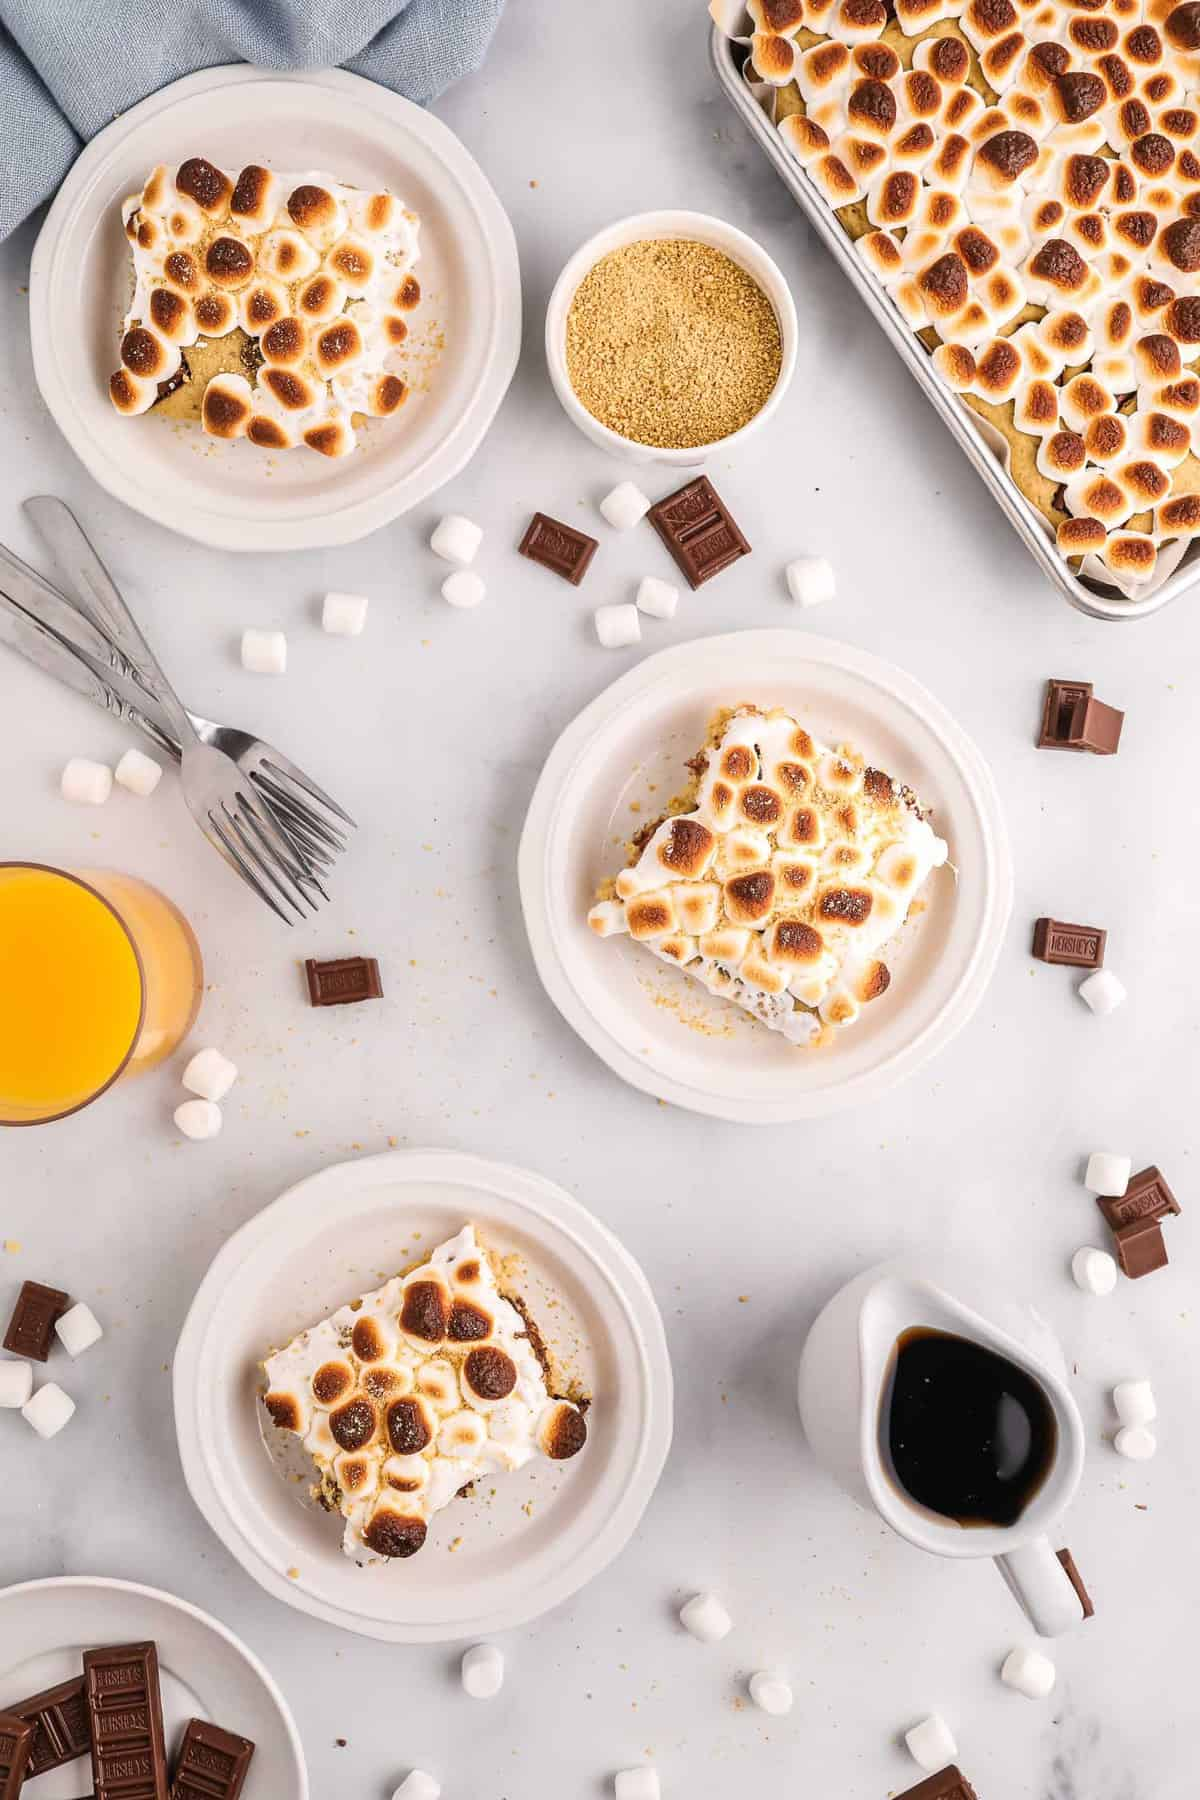 Overhead view of three plates of s'mores pancakes with a sheet pan of more also visible.